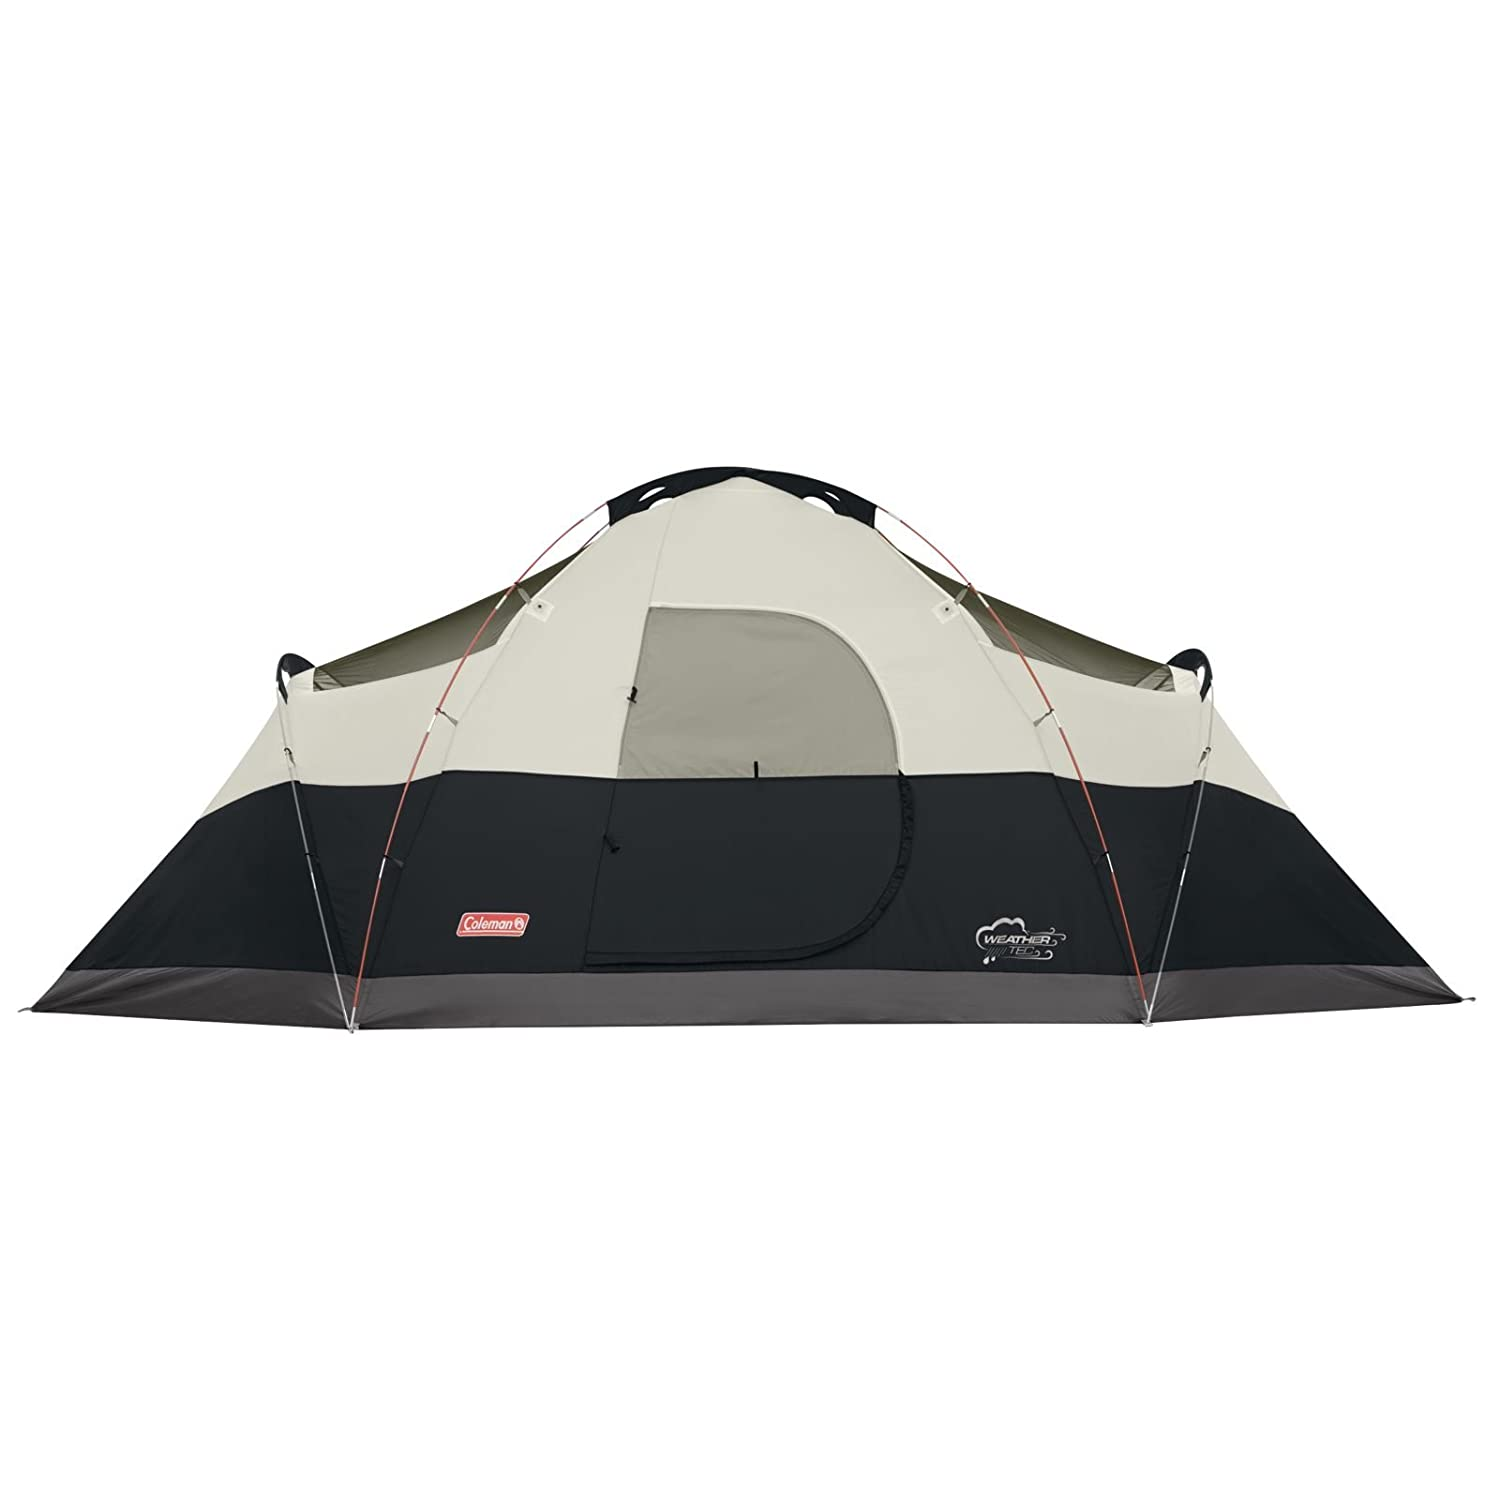 Coleman 8 Person Red Canyon Tent Black Blue Red